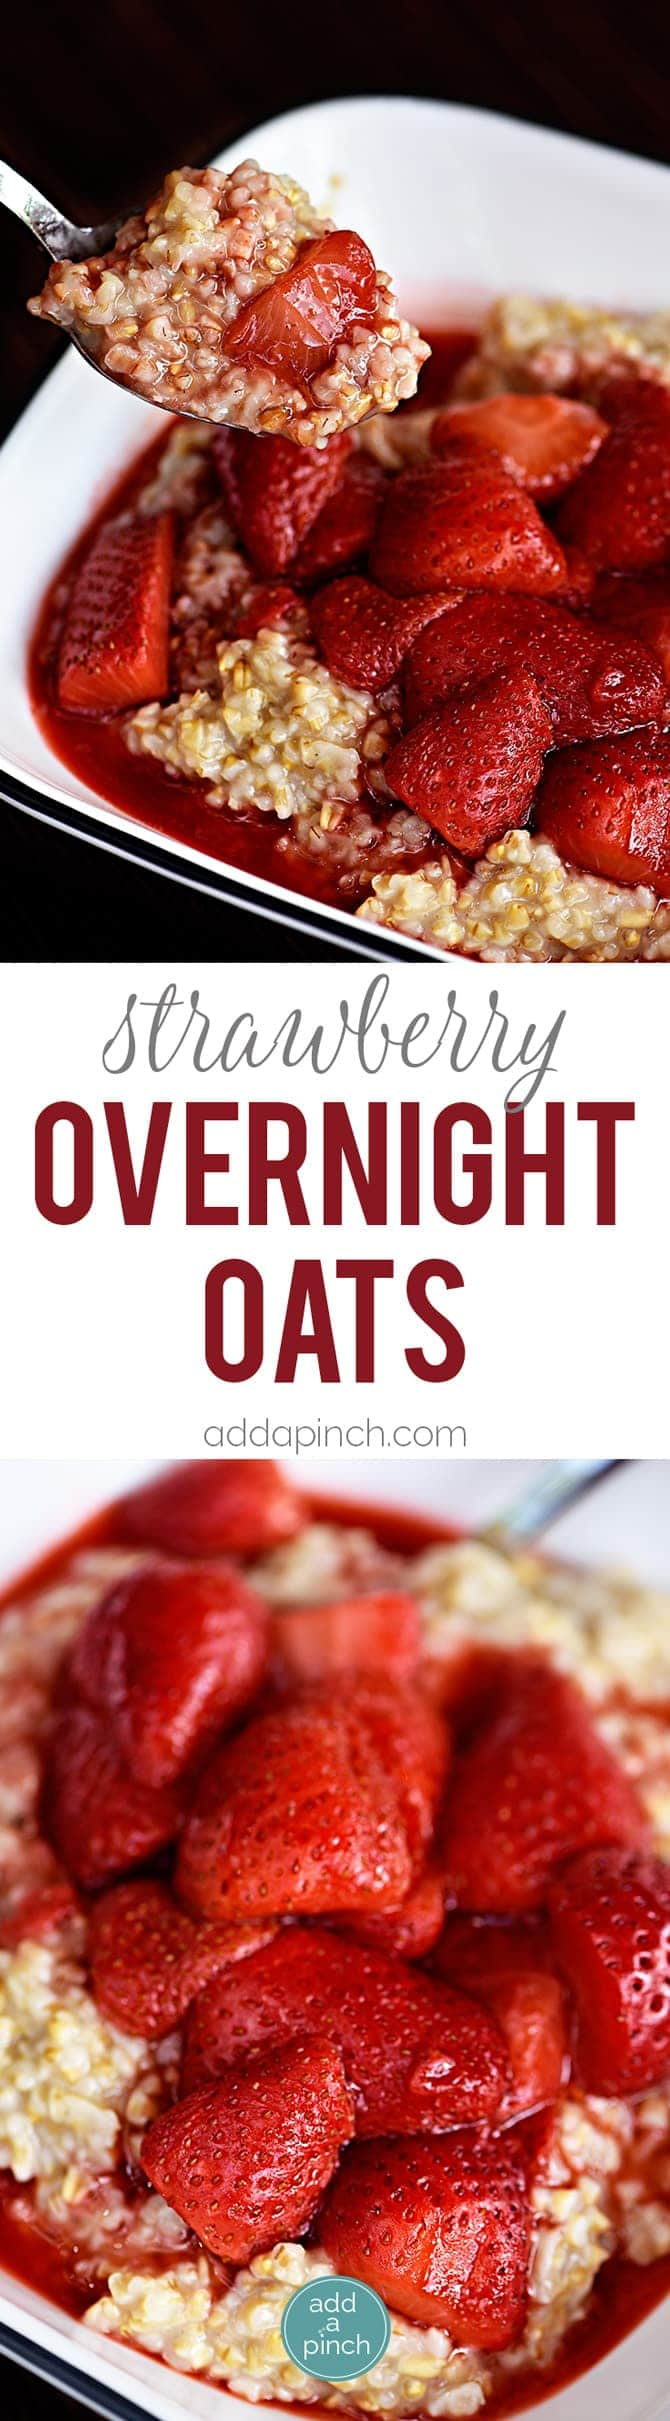 Overnight oats make for a quick and easy breakfast. Made of steel-cut oats, your choice of milk, and topped with fresh strawberries! So delicious! // addapinch.com